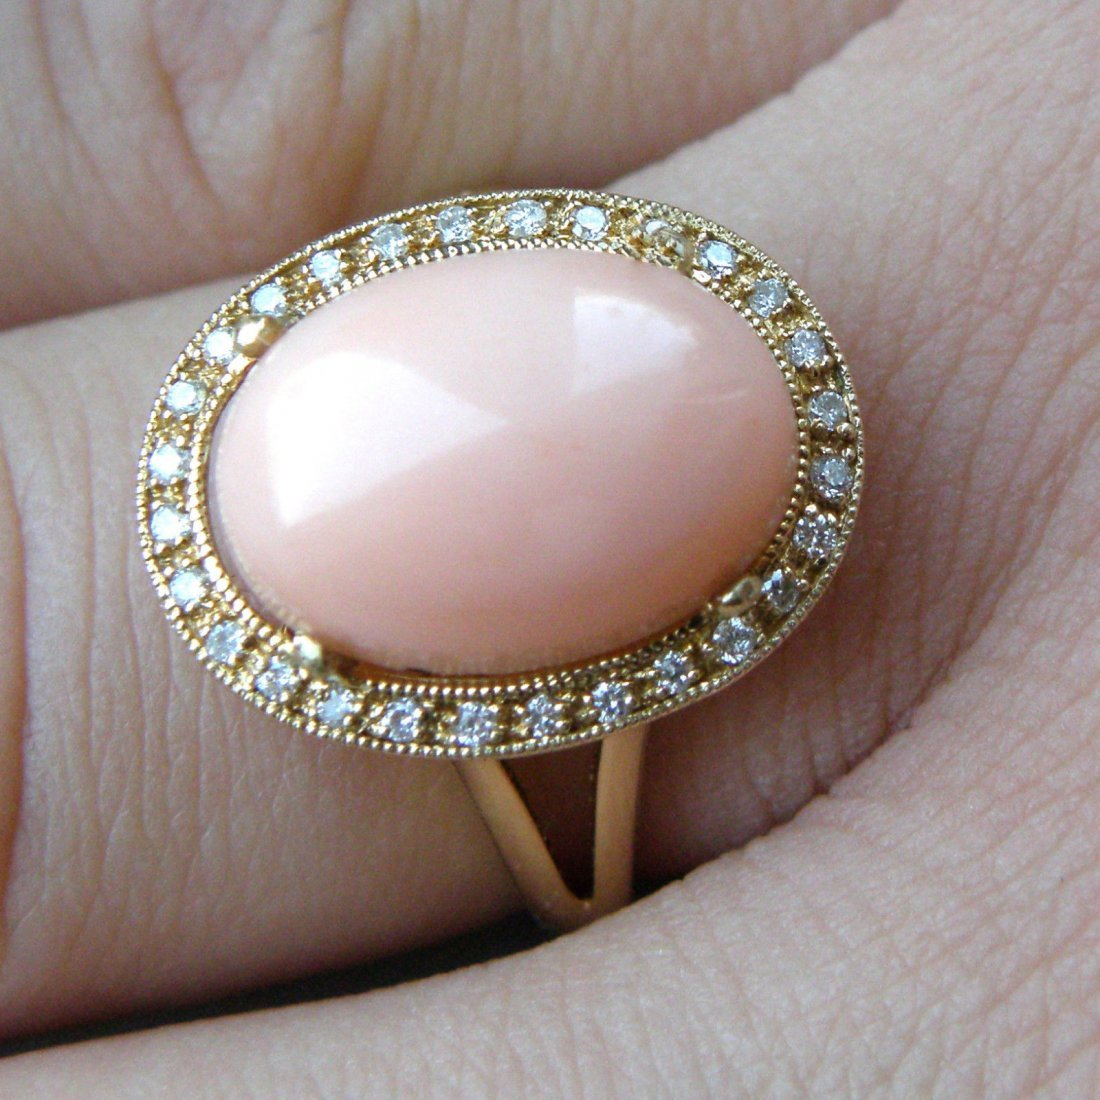 NEW 18K Y/ GOLD UNTREATED PINK SEA CORAL DIAMOND RING